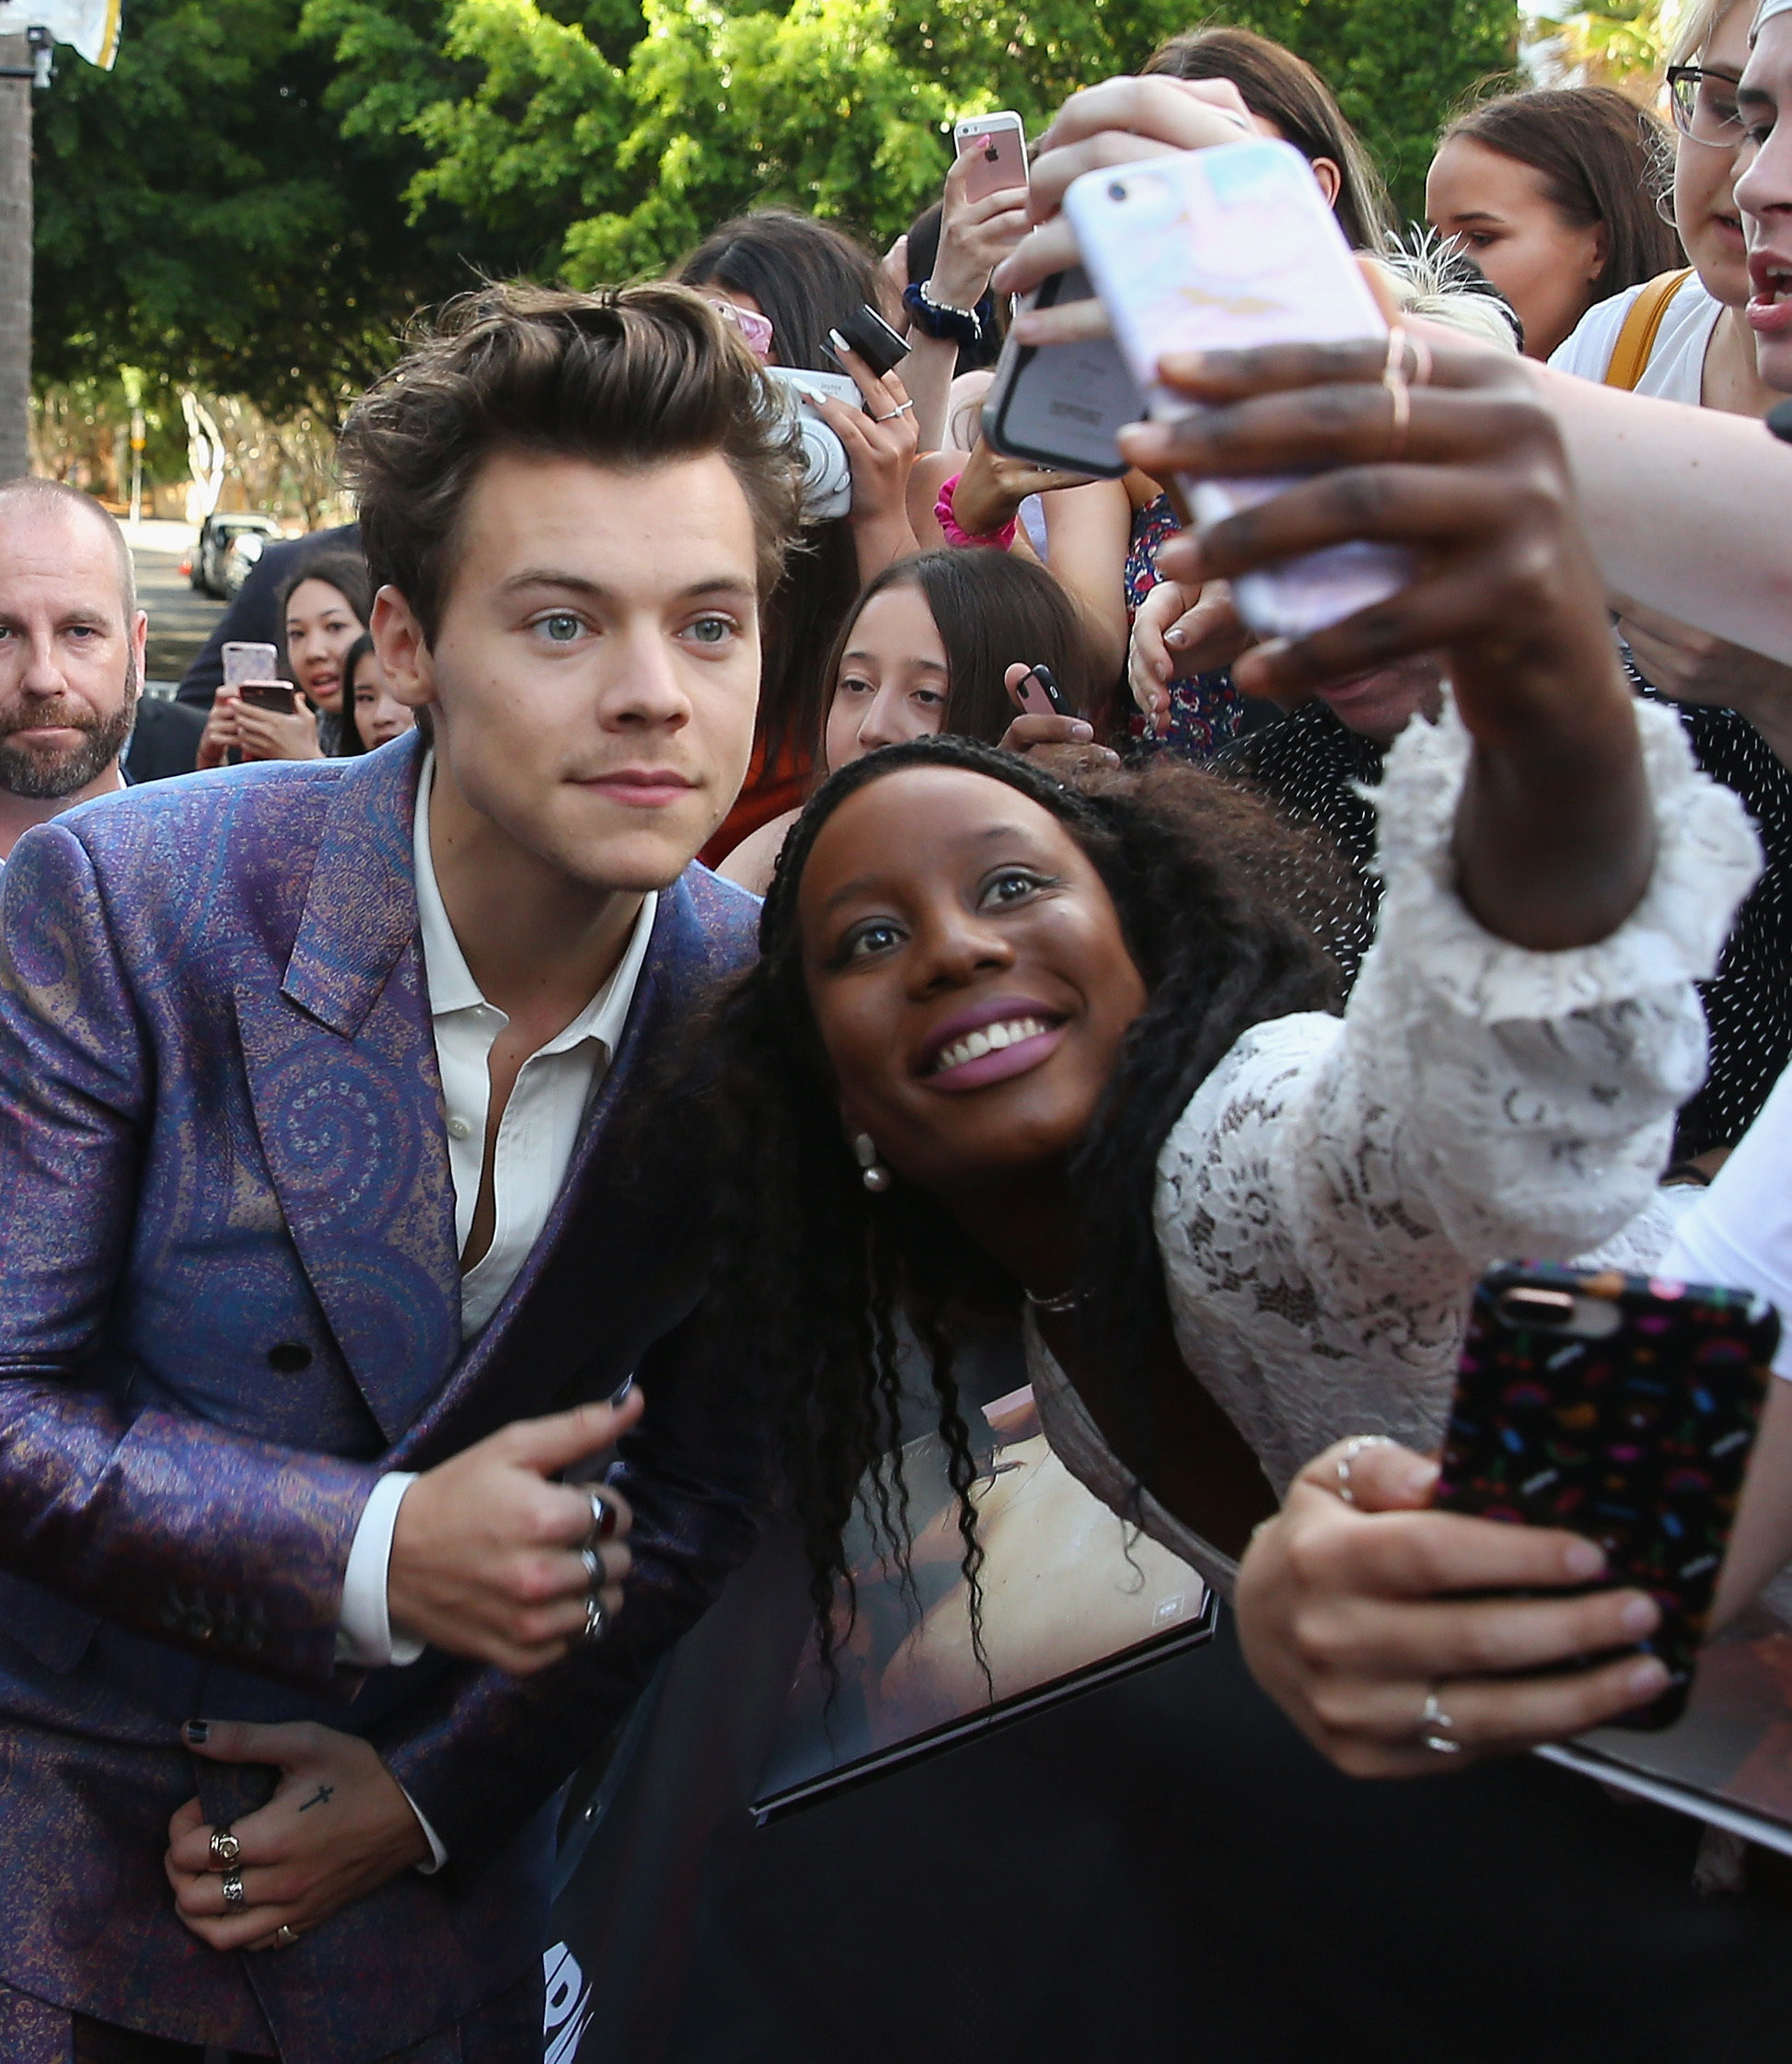 Harry Styles arrives for the 31st Annual ARIA Awards 2017 at The Star in Sydney, Australia, on Nov. 28, 2017.